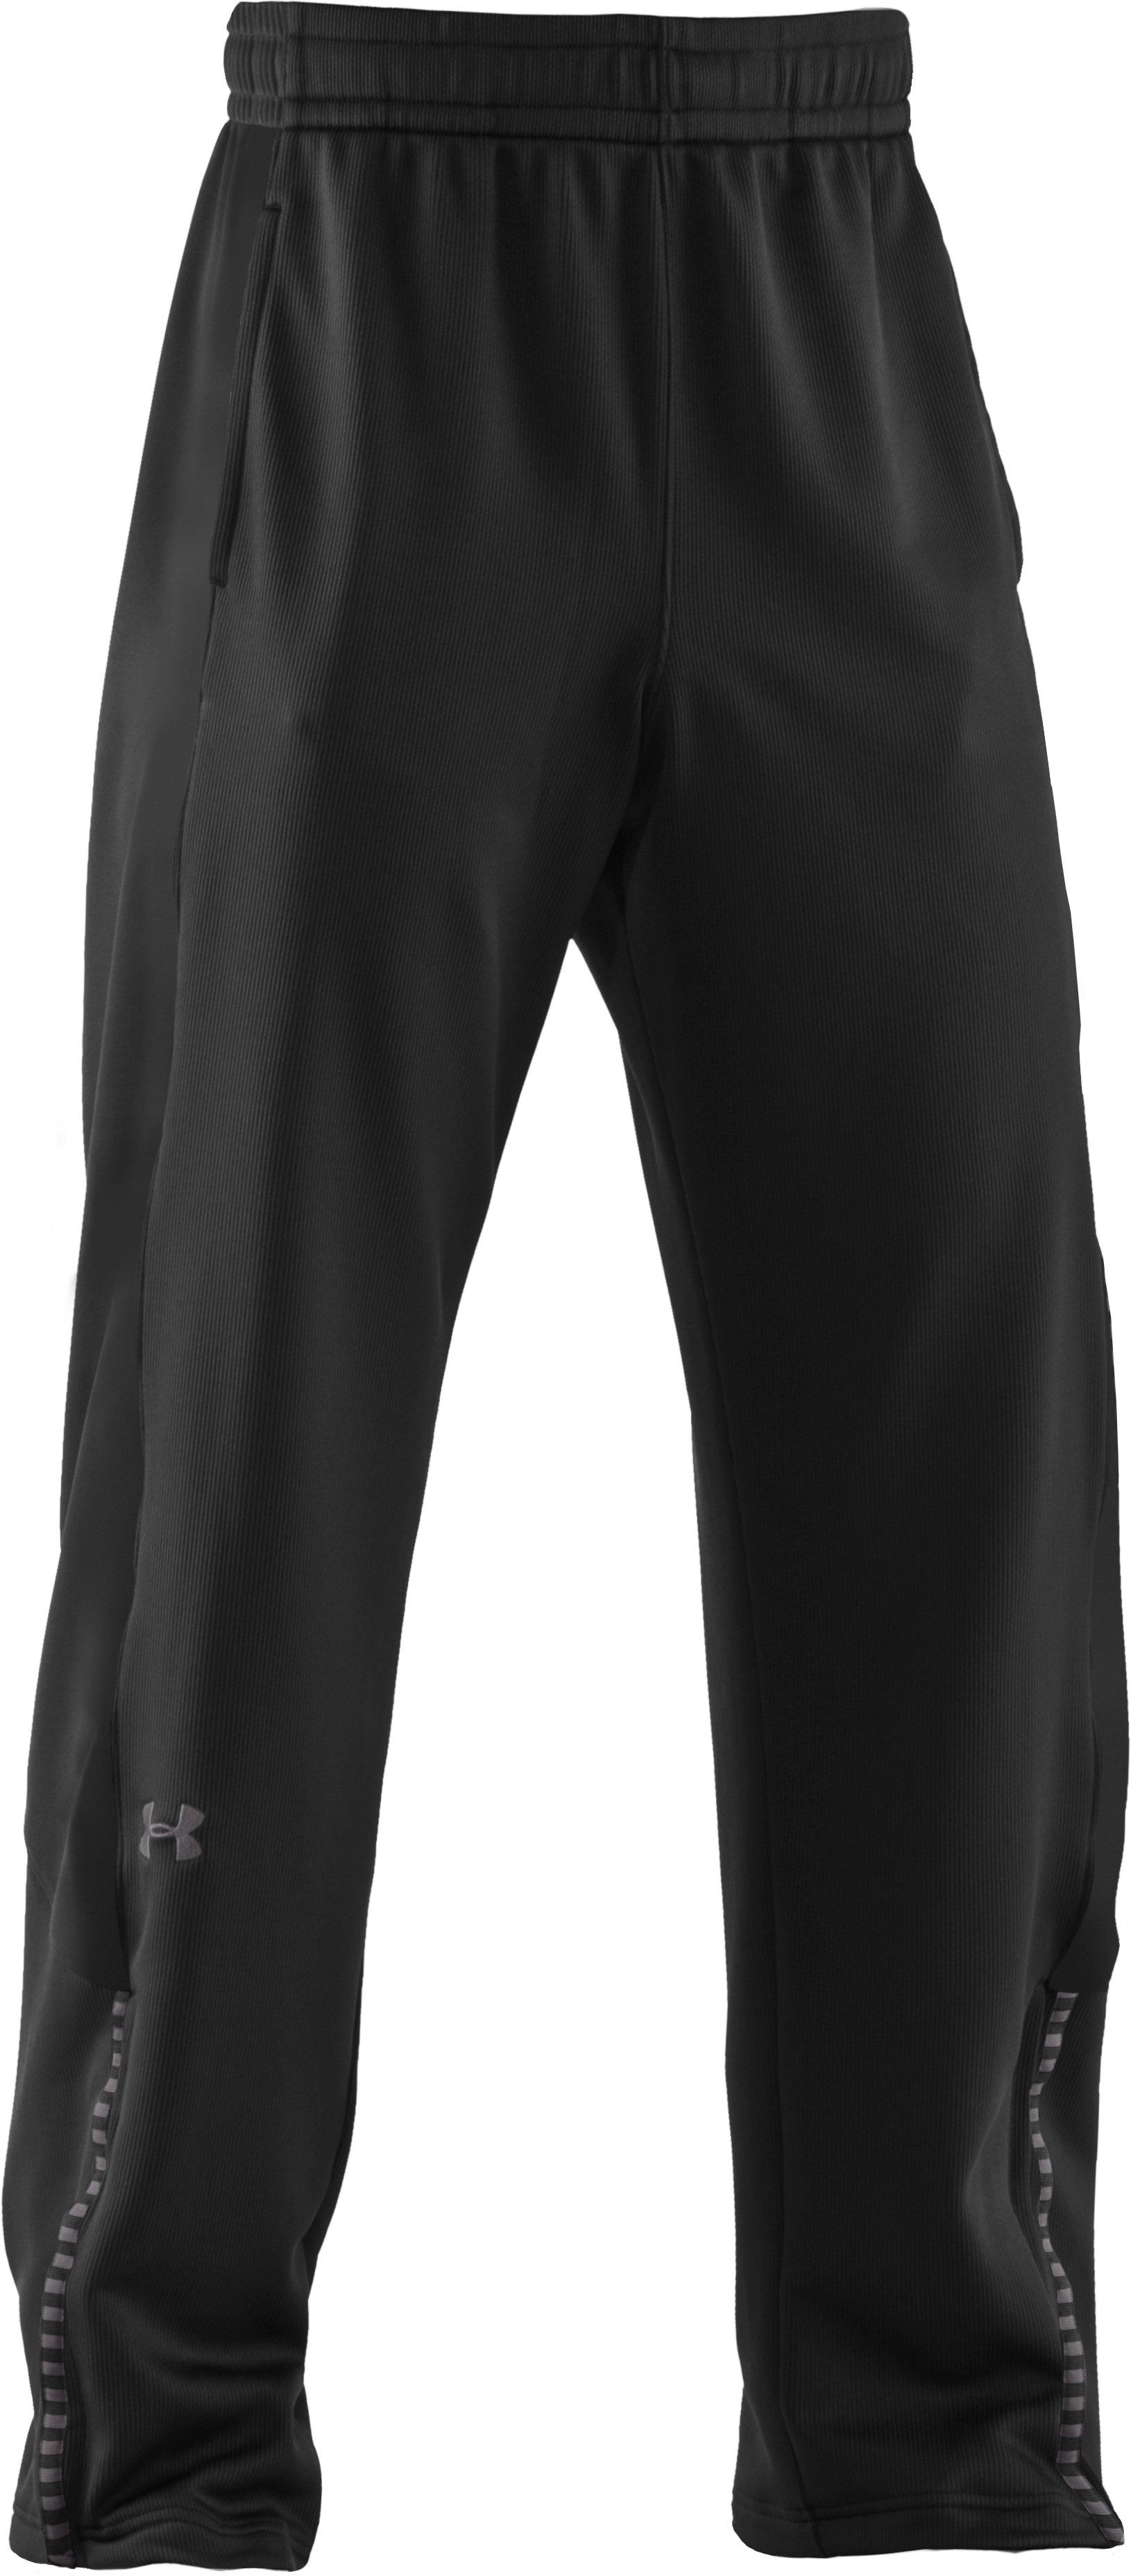 Men's UA Exceed Warm-Up Pants, Black